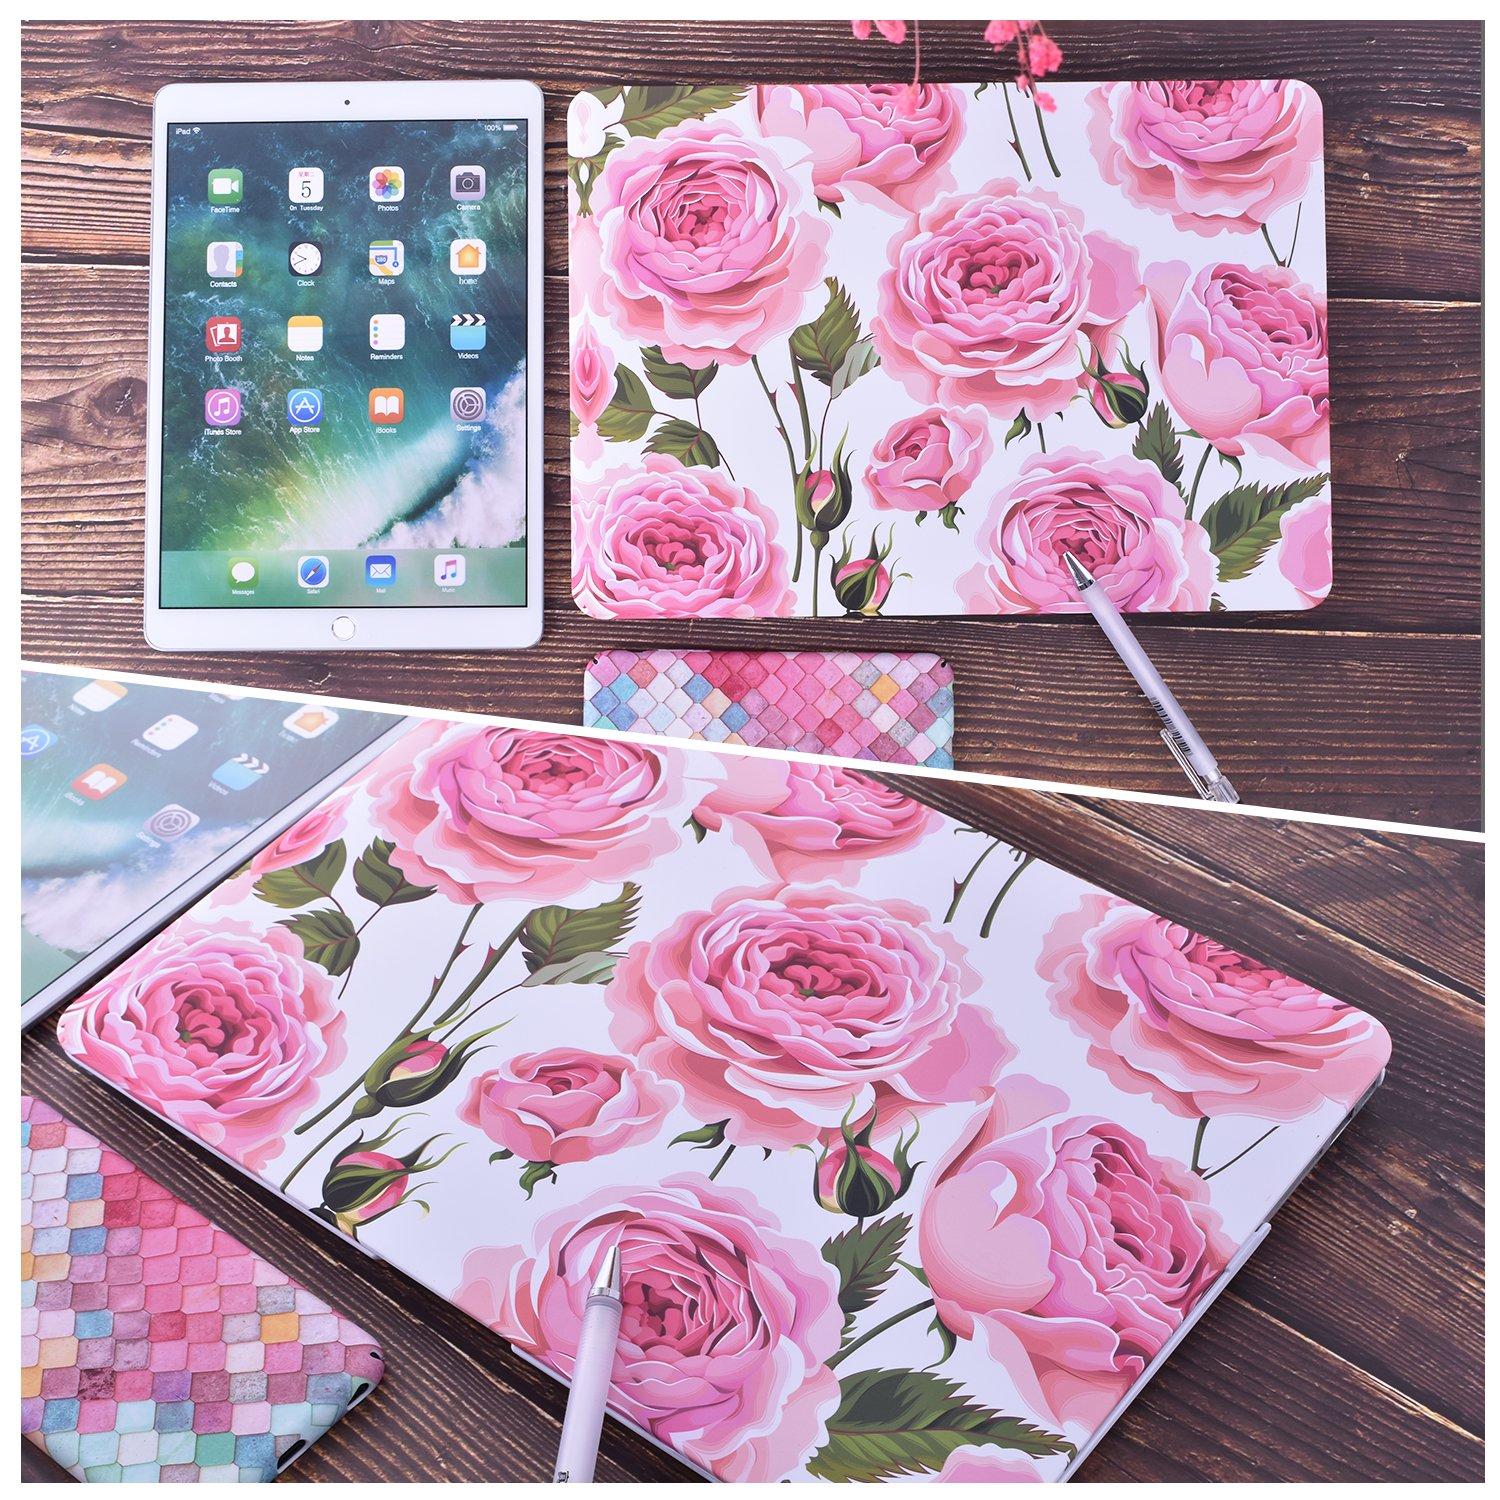 EGONE Hard Plastic Protective Case Soft-Touch For Apple Macbook Air 13 Inch Model A1369 And A1466(2012-1017), Flower